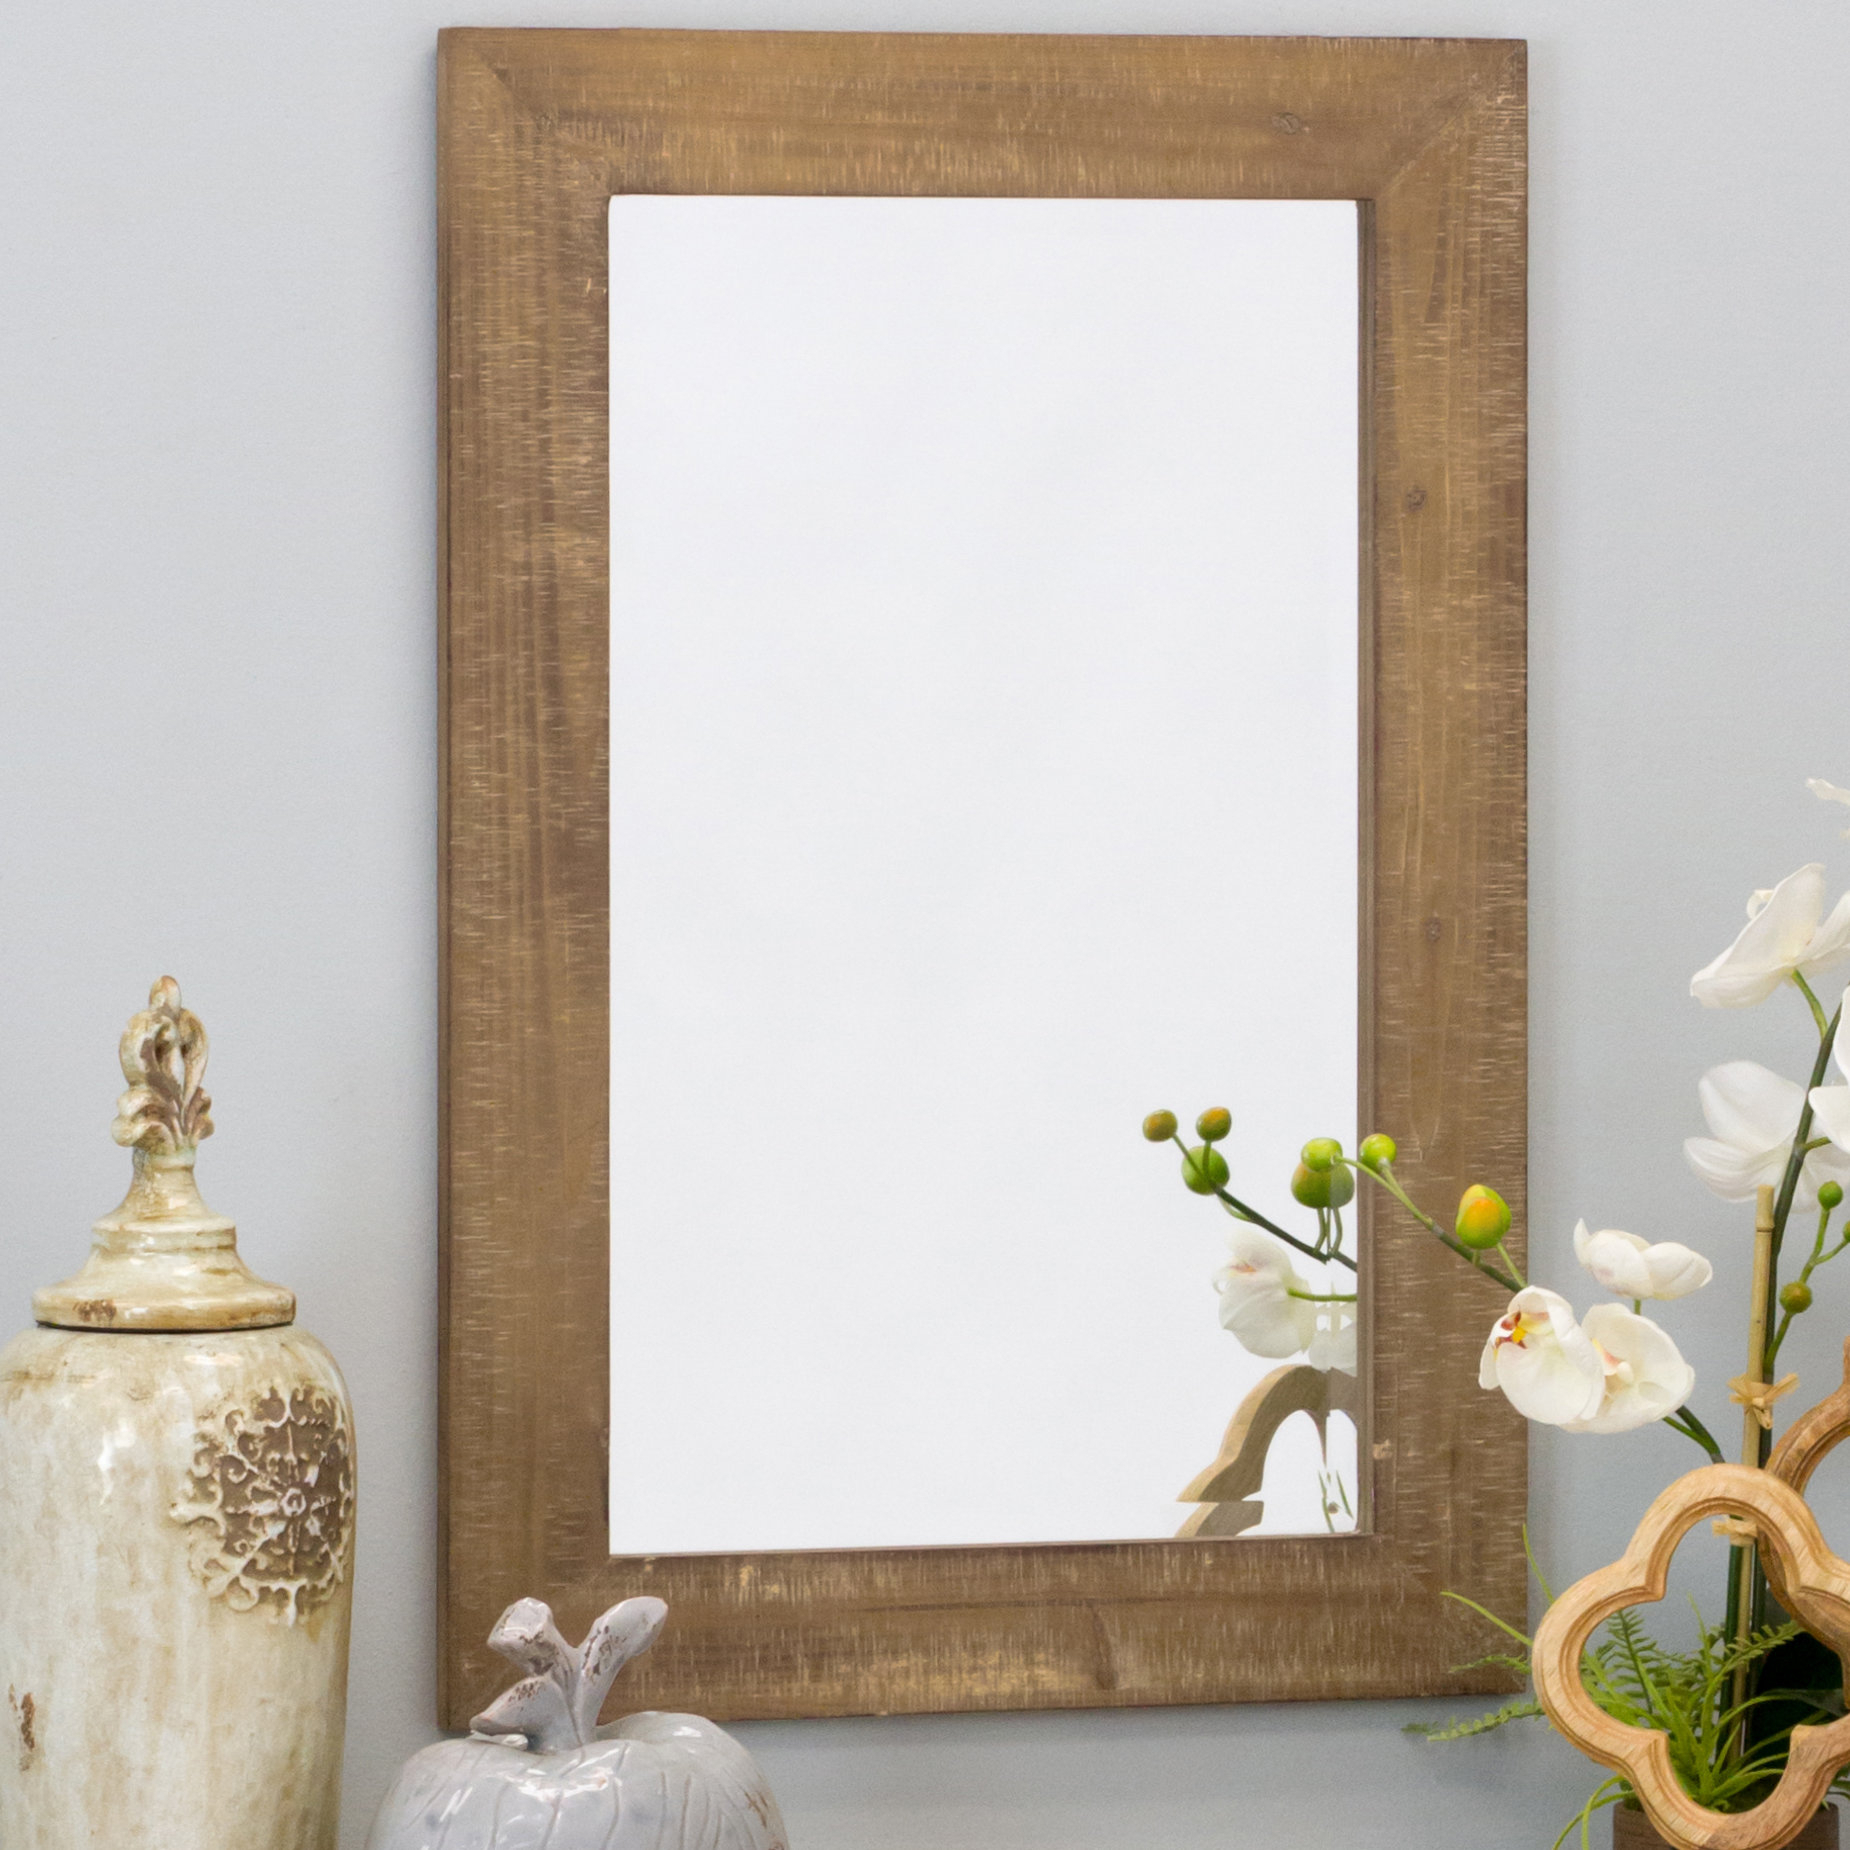 Union Rustic Longwood Rustic Beveled Accent Mirror Within Maude Accent Mirrors (Image 17 of 20)